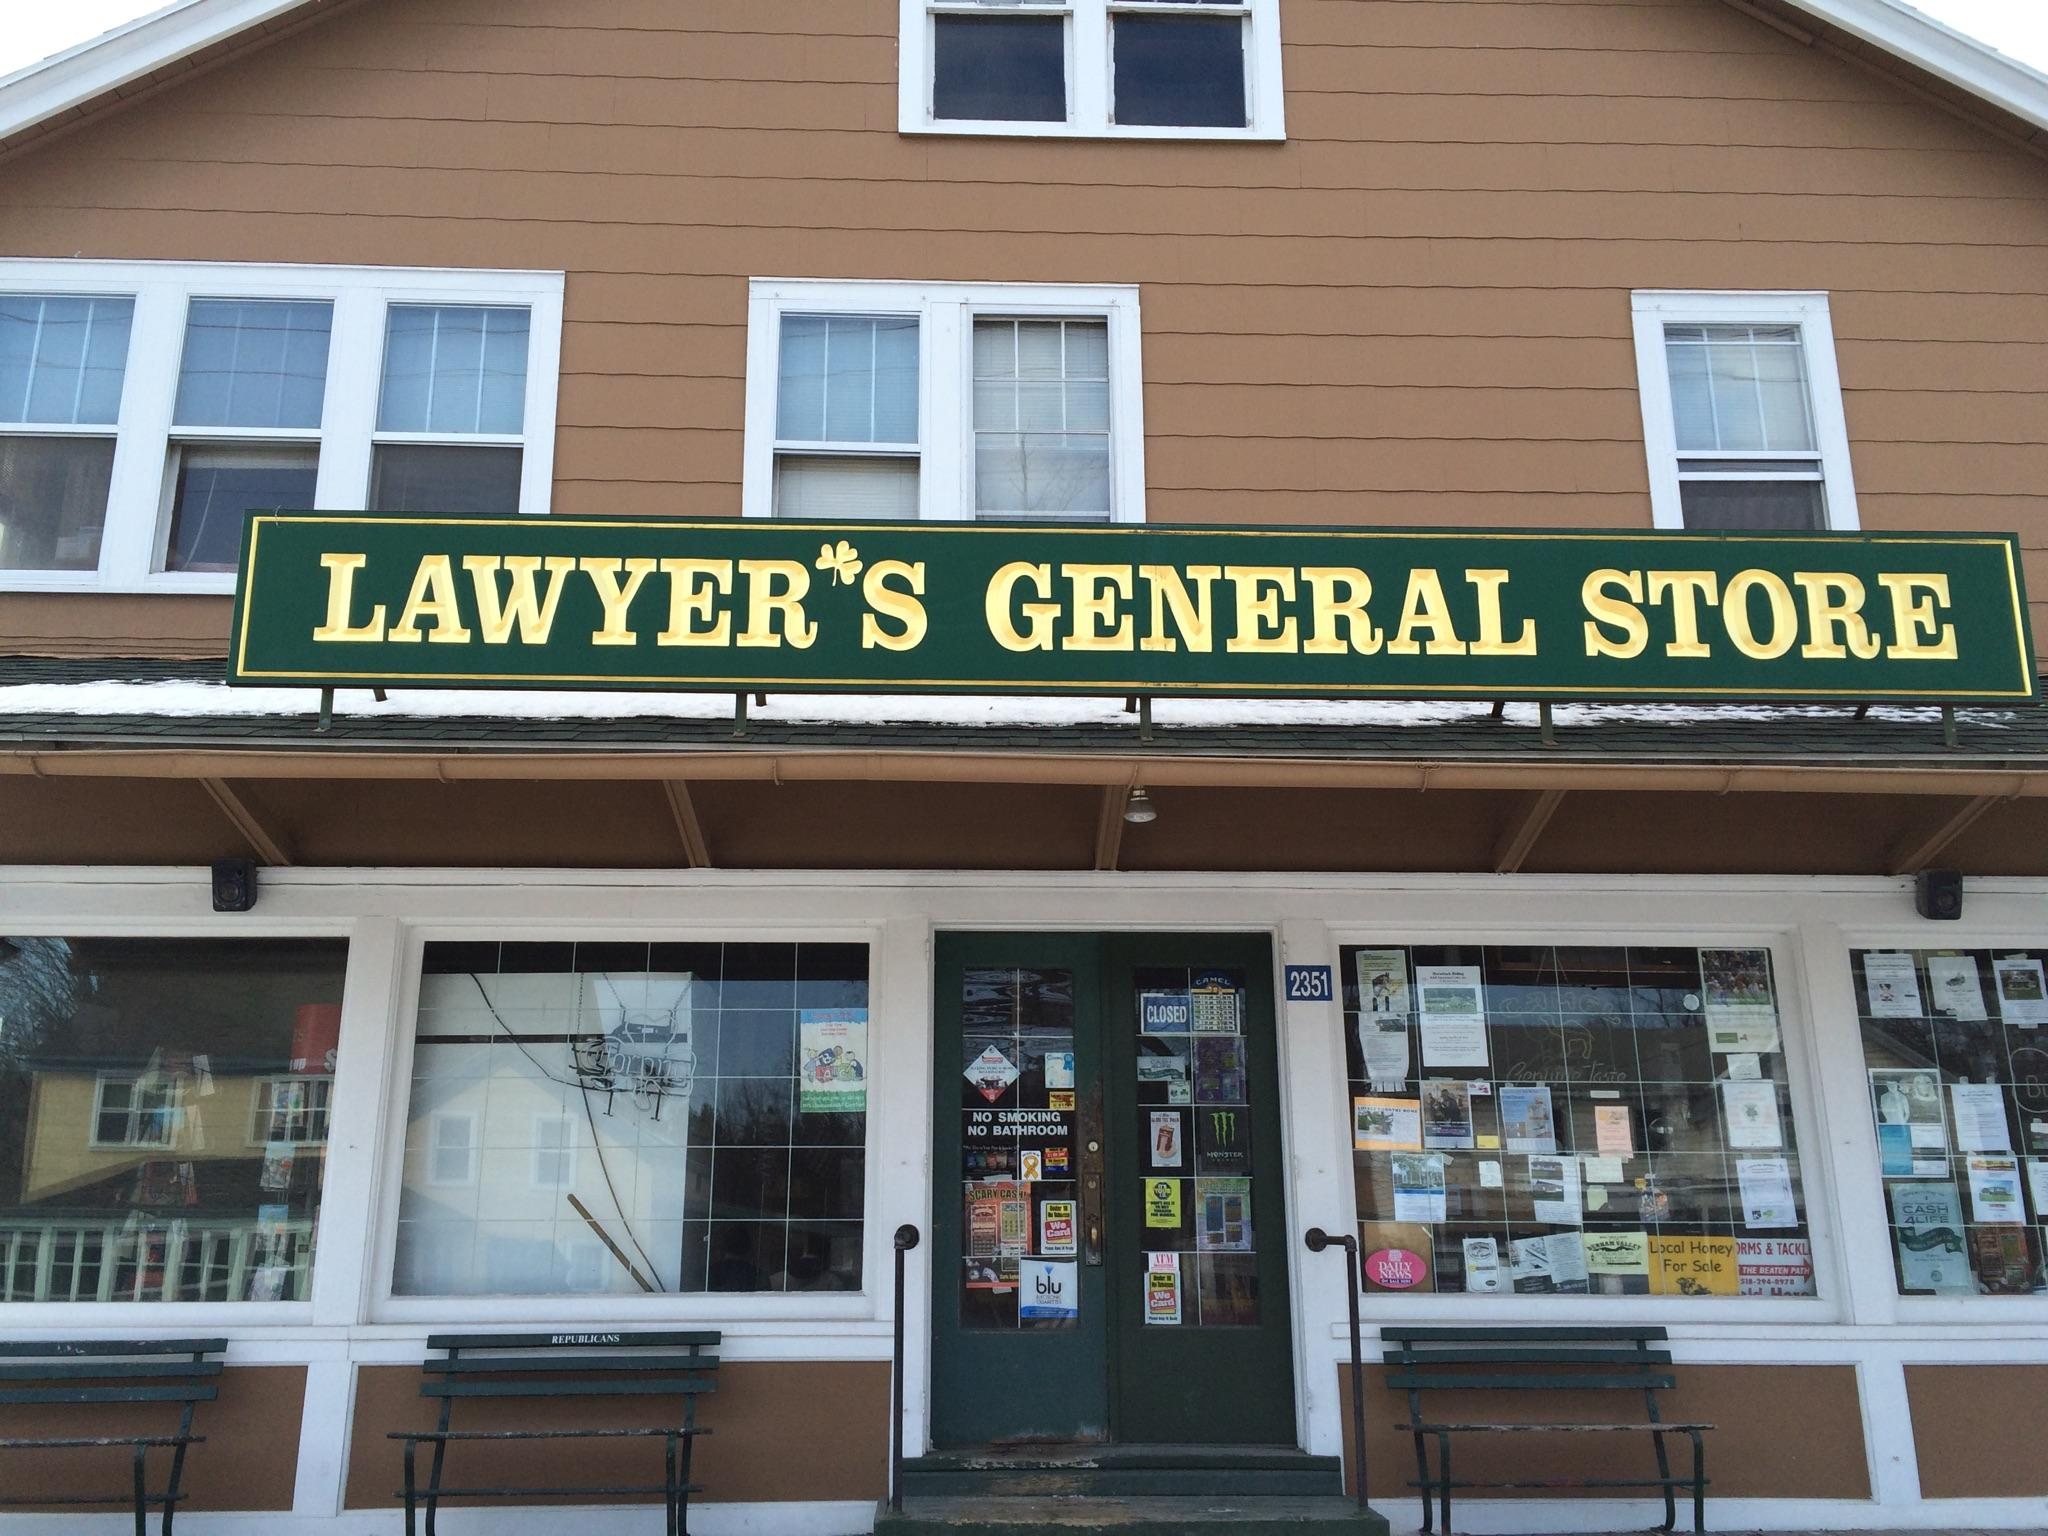 Lawyer's General Store